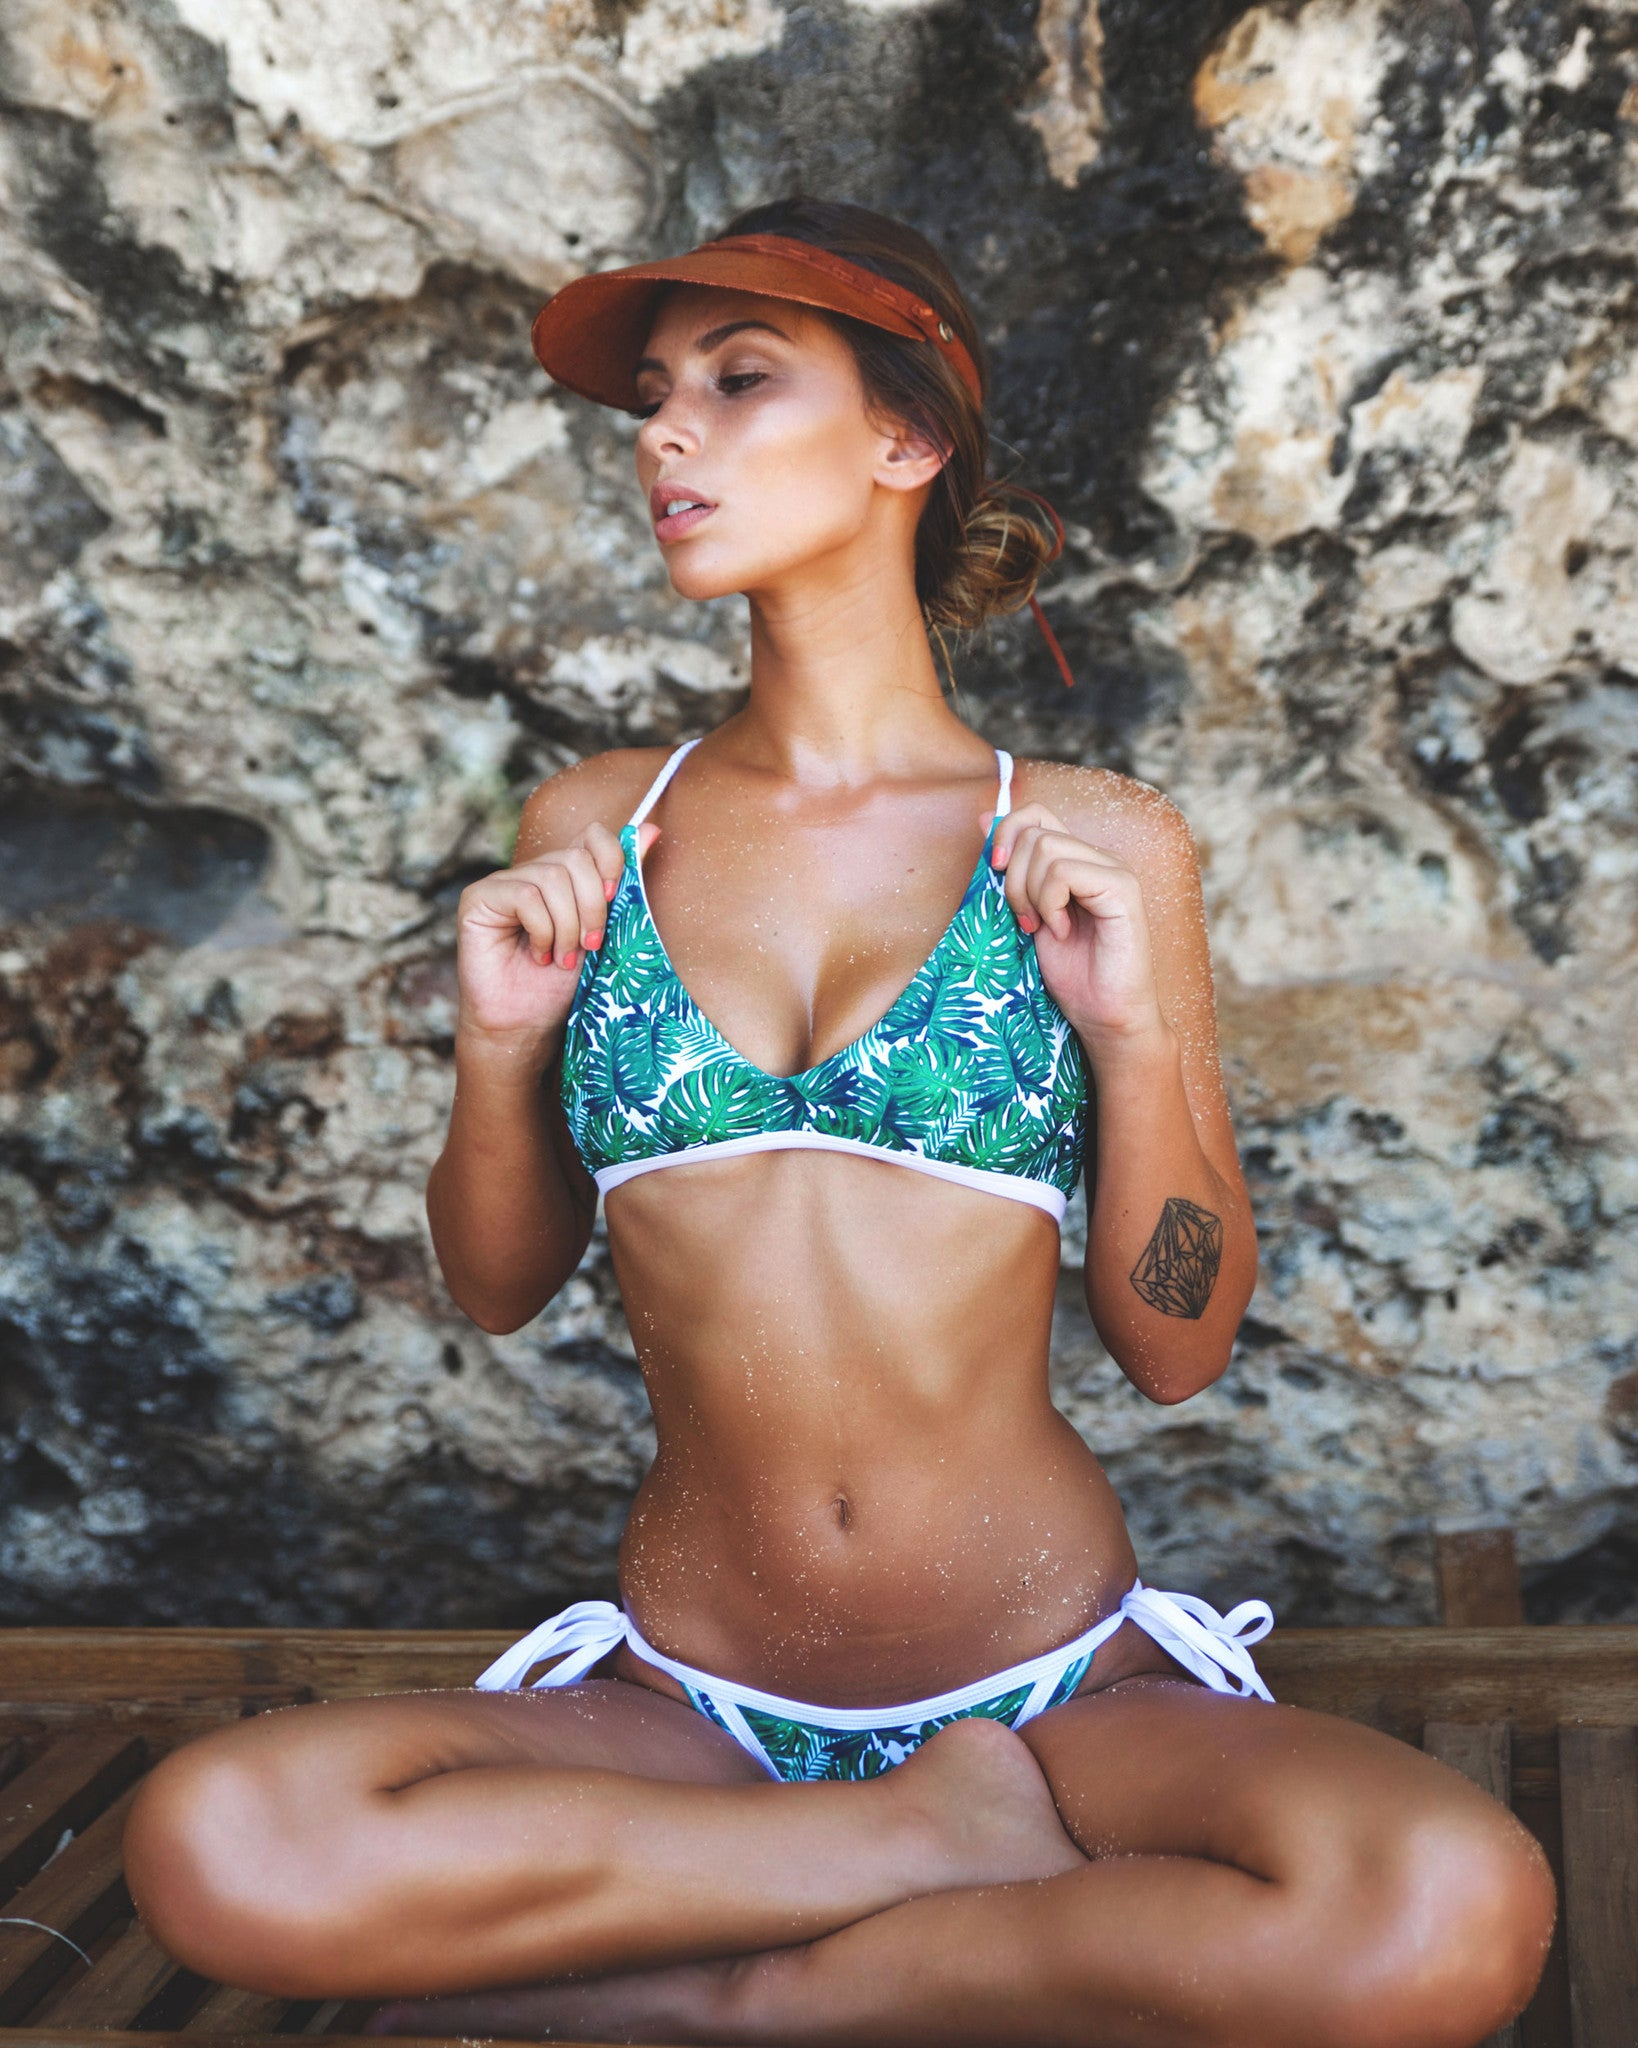 Escondido btms - Jungle - cheeky cut brazilian surf bikinis Cenote Swimwear that stays on in the surf